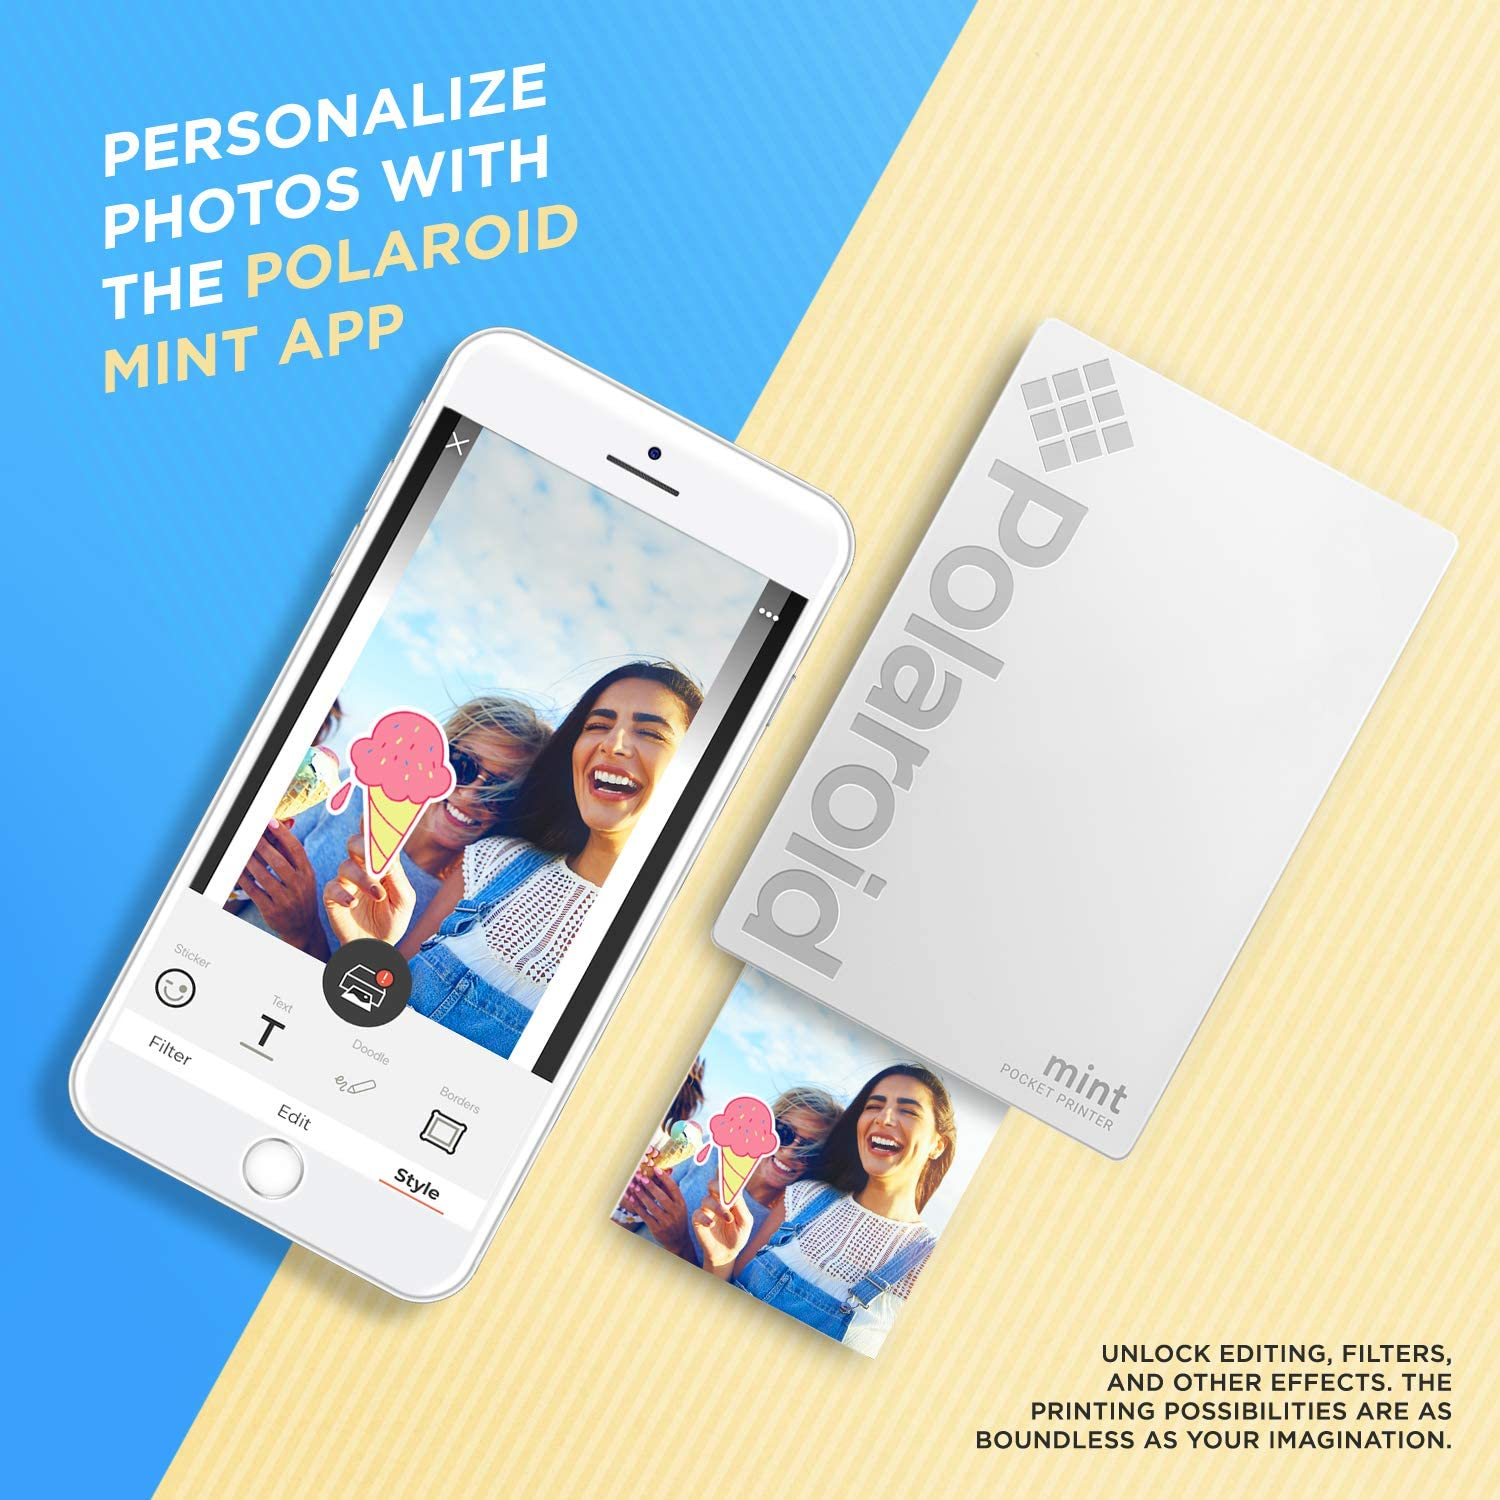 Amazon.com: Polaroid Mint - Impresora de bolsillo con ...